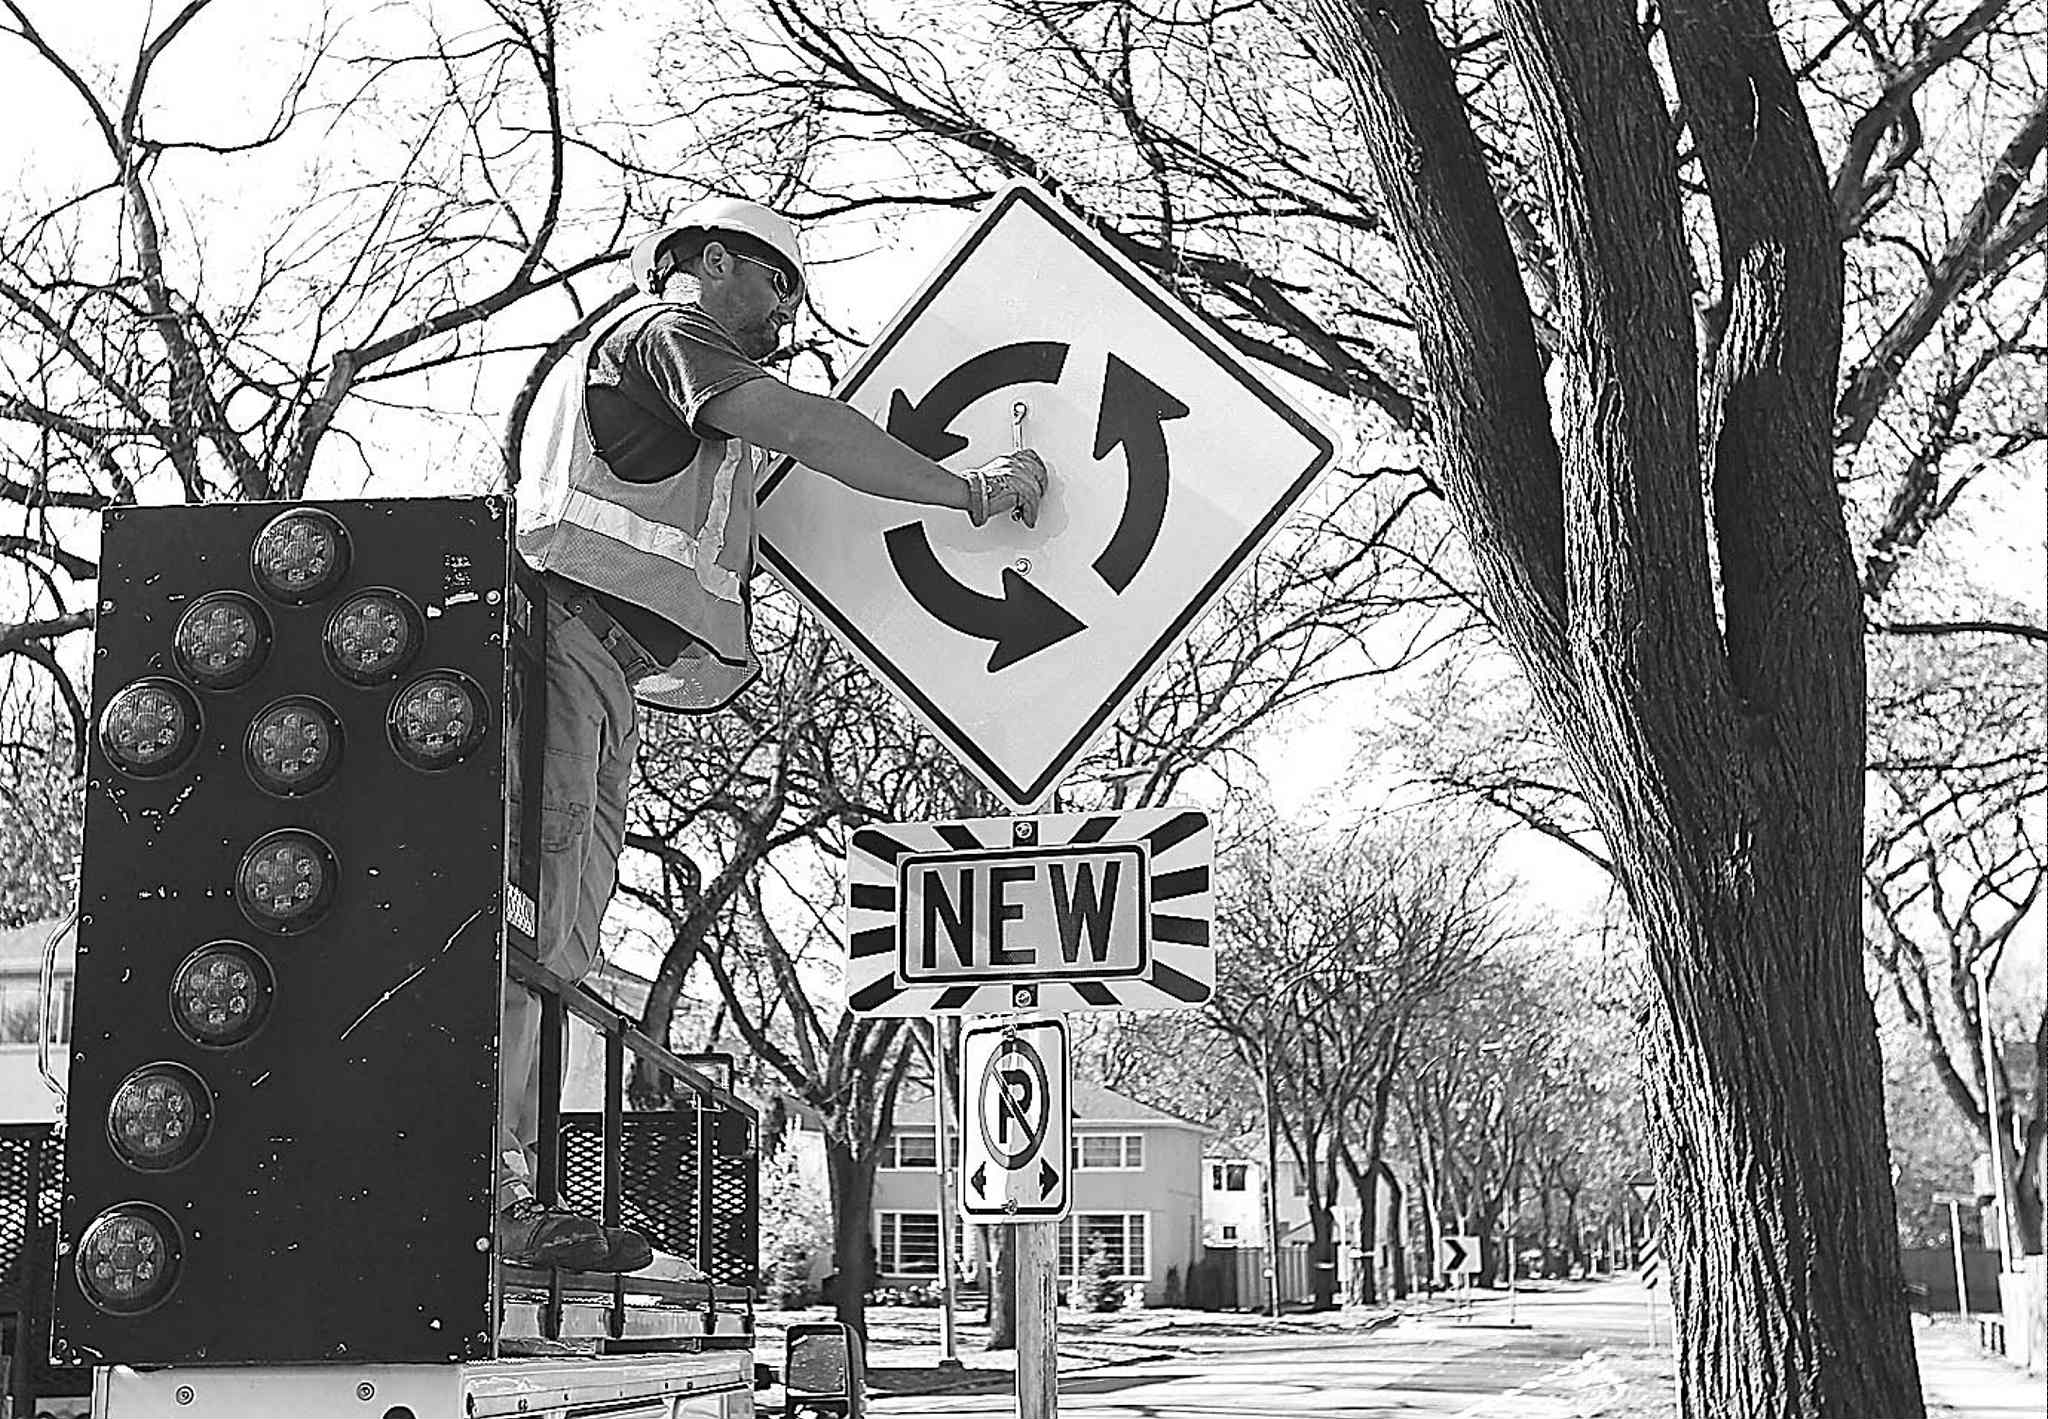 A city worker installs a sign near a traffic-calming circle on Grosvenor Avenue.